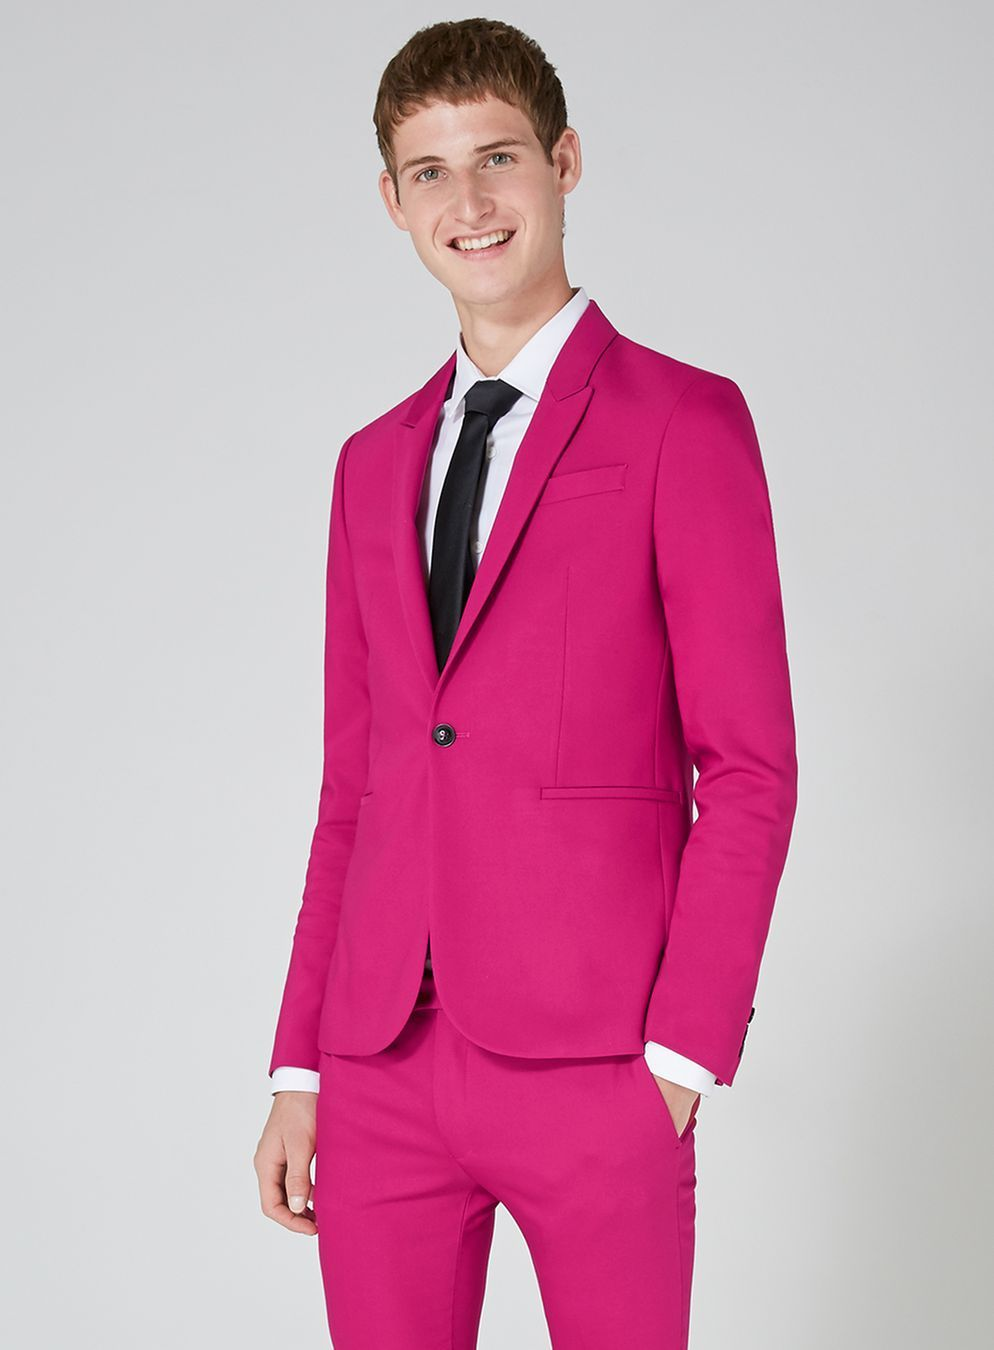 Bright Pink Spray On Suit Jacket | Suit jackets and Bright pink